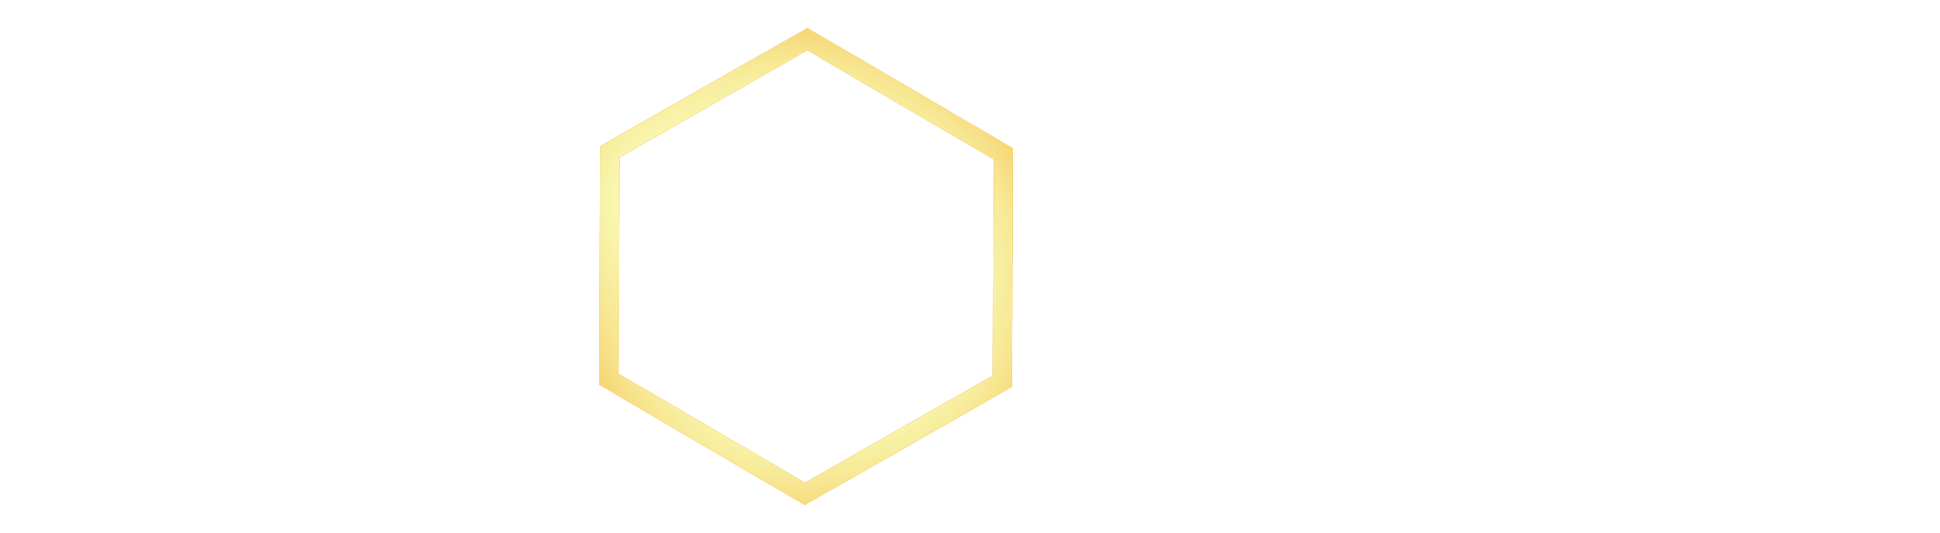 MagickMale Foundations Logo